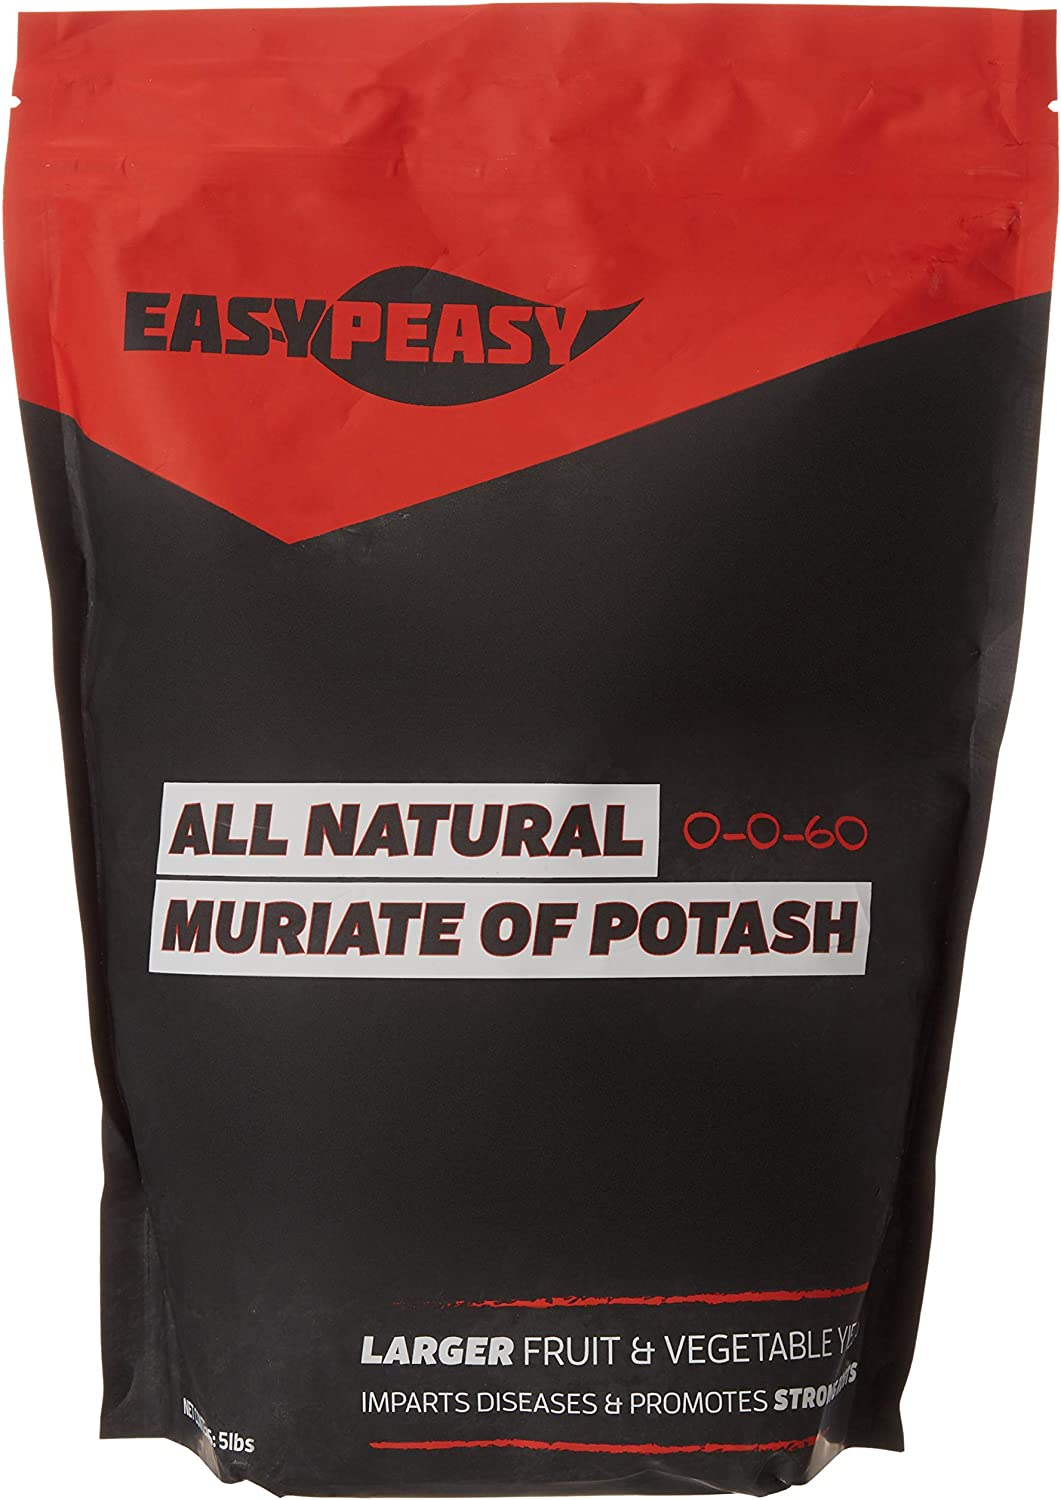 Easy Peasy Plants All-Natural Muriate of Potash Granules - Potassium Fertilizer for Gardens, Lawns, and Trees (5lb Bag)